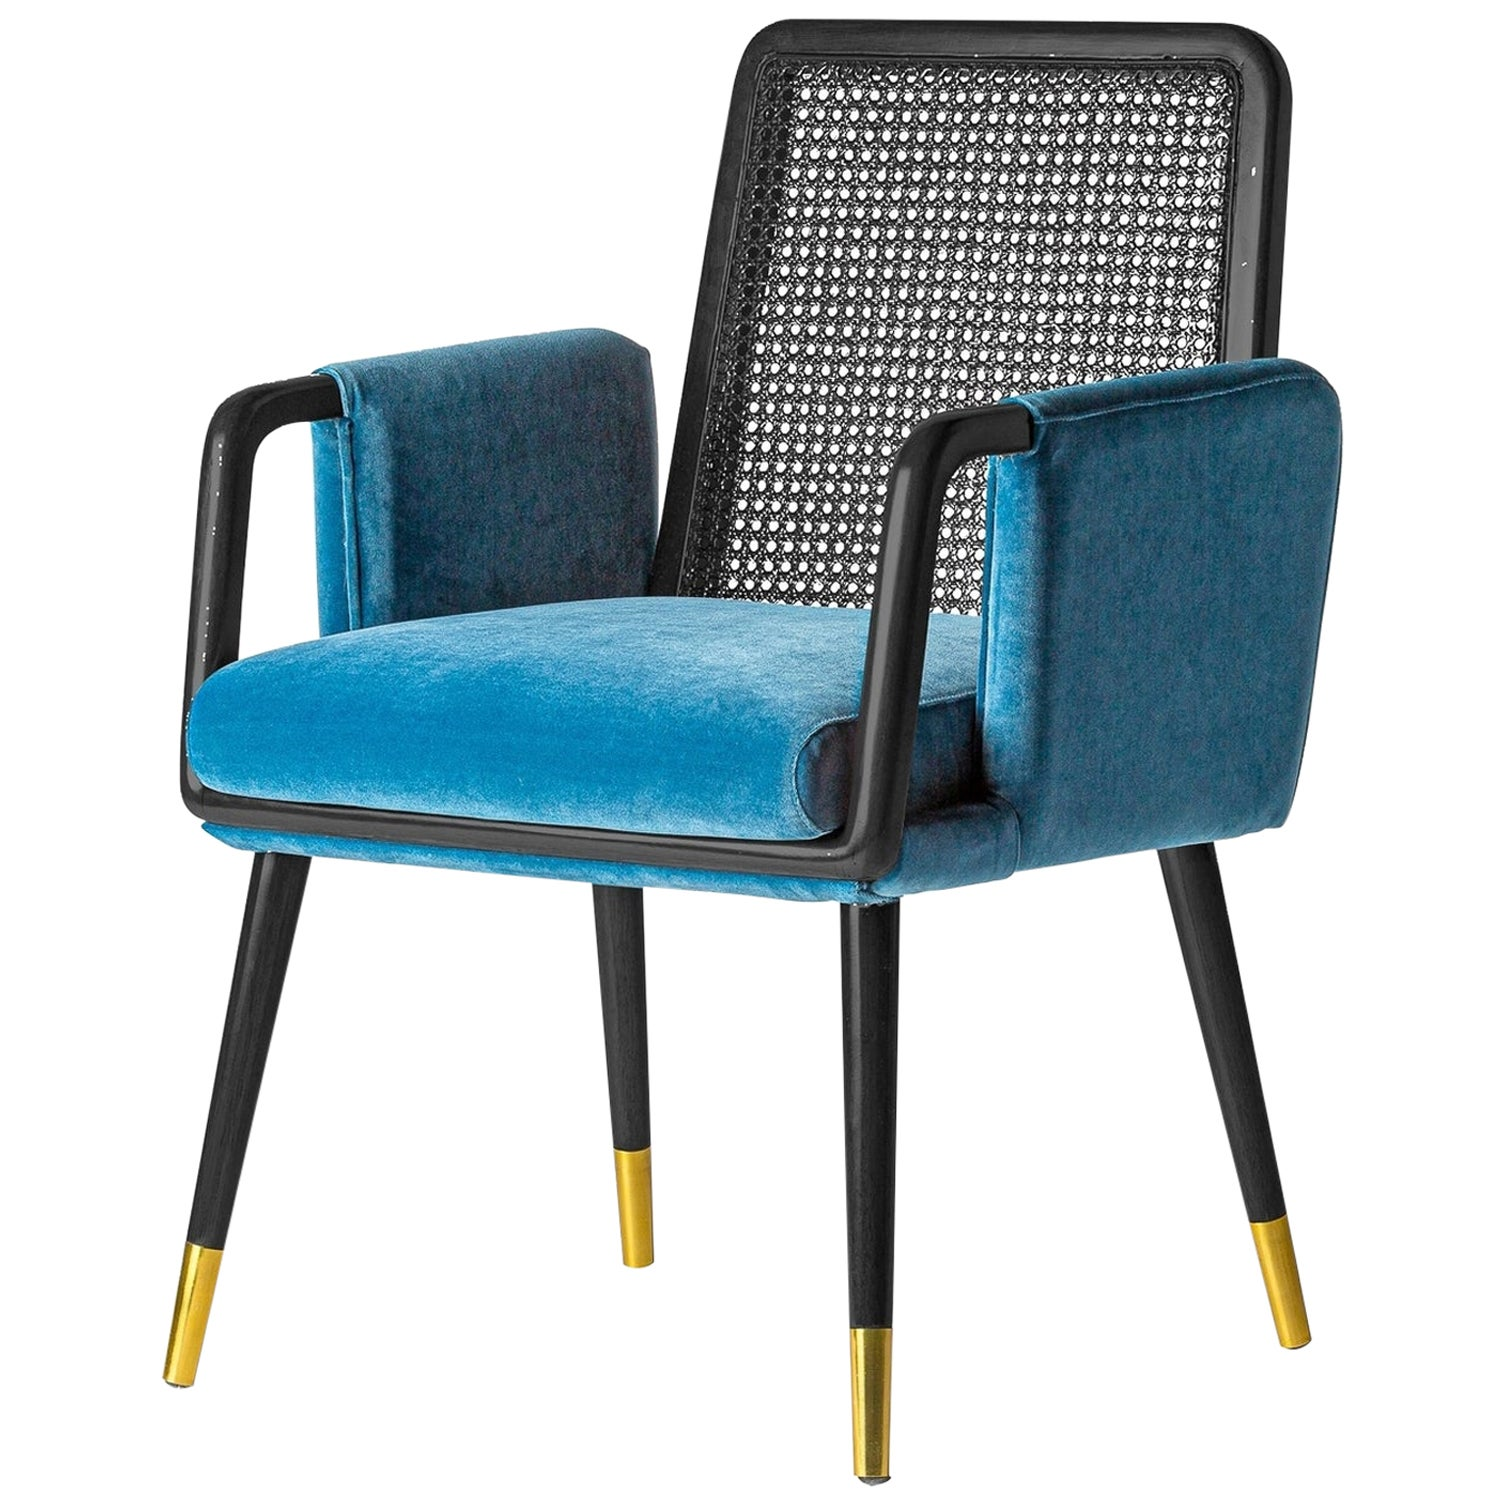 MCM Style Black Lacquer Walnut and Black Lacquer Cane with Blue Velvet Chair